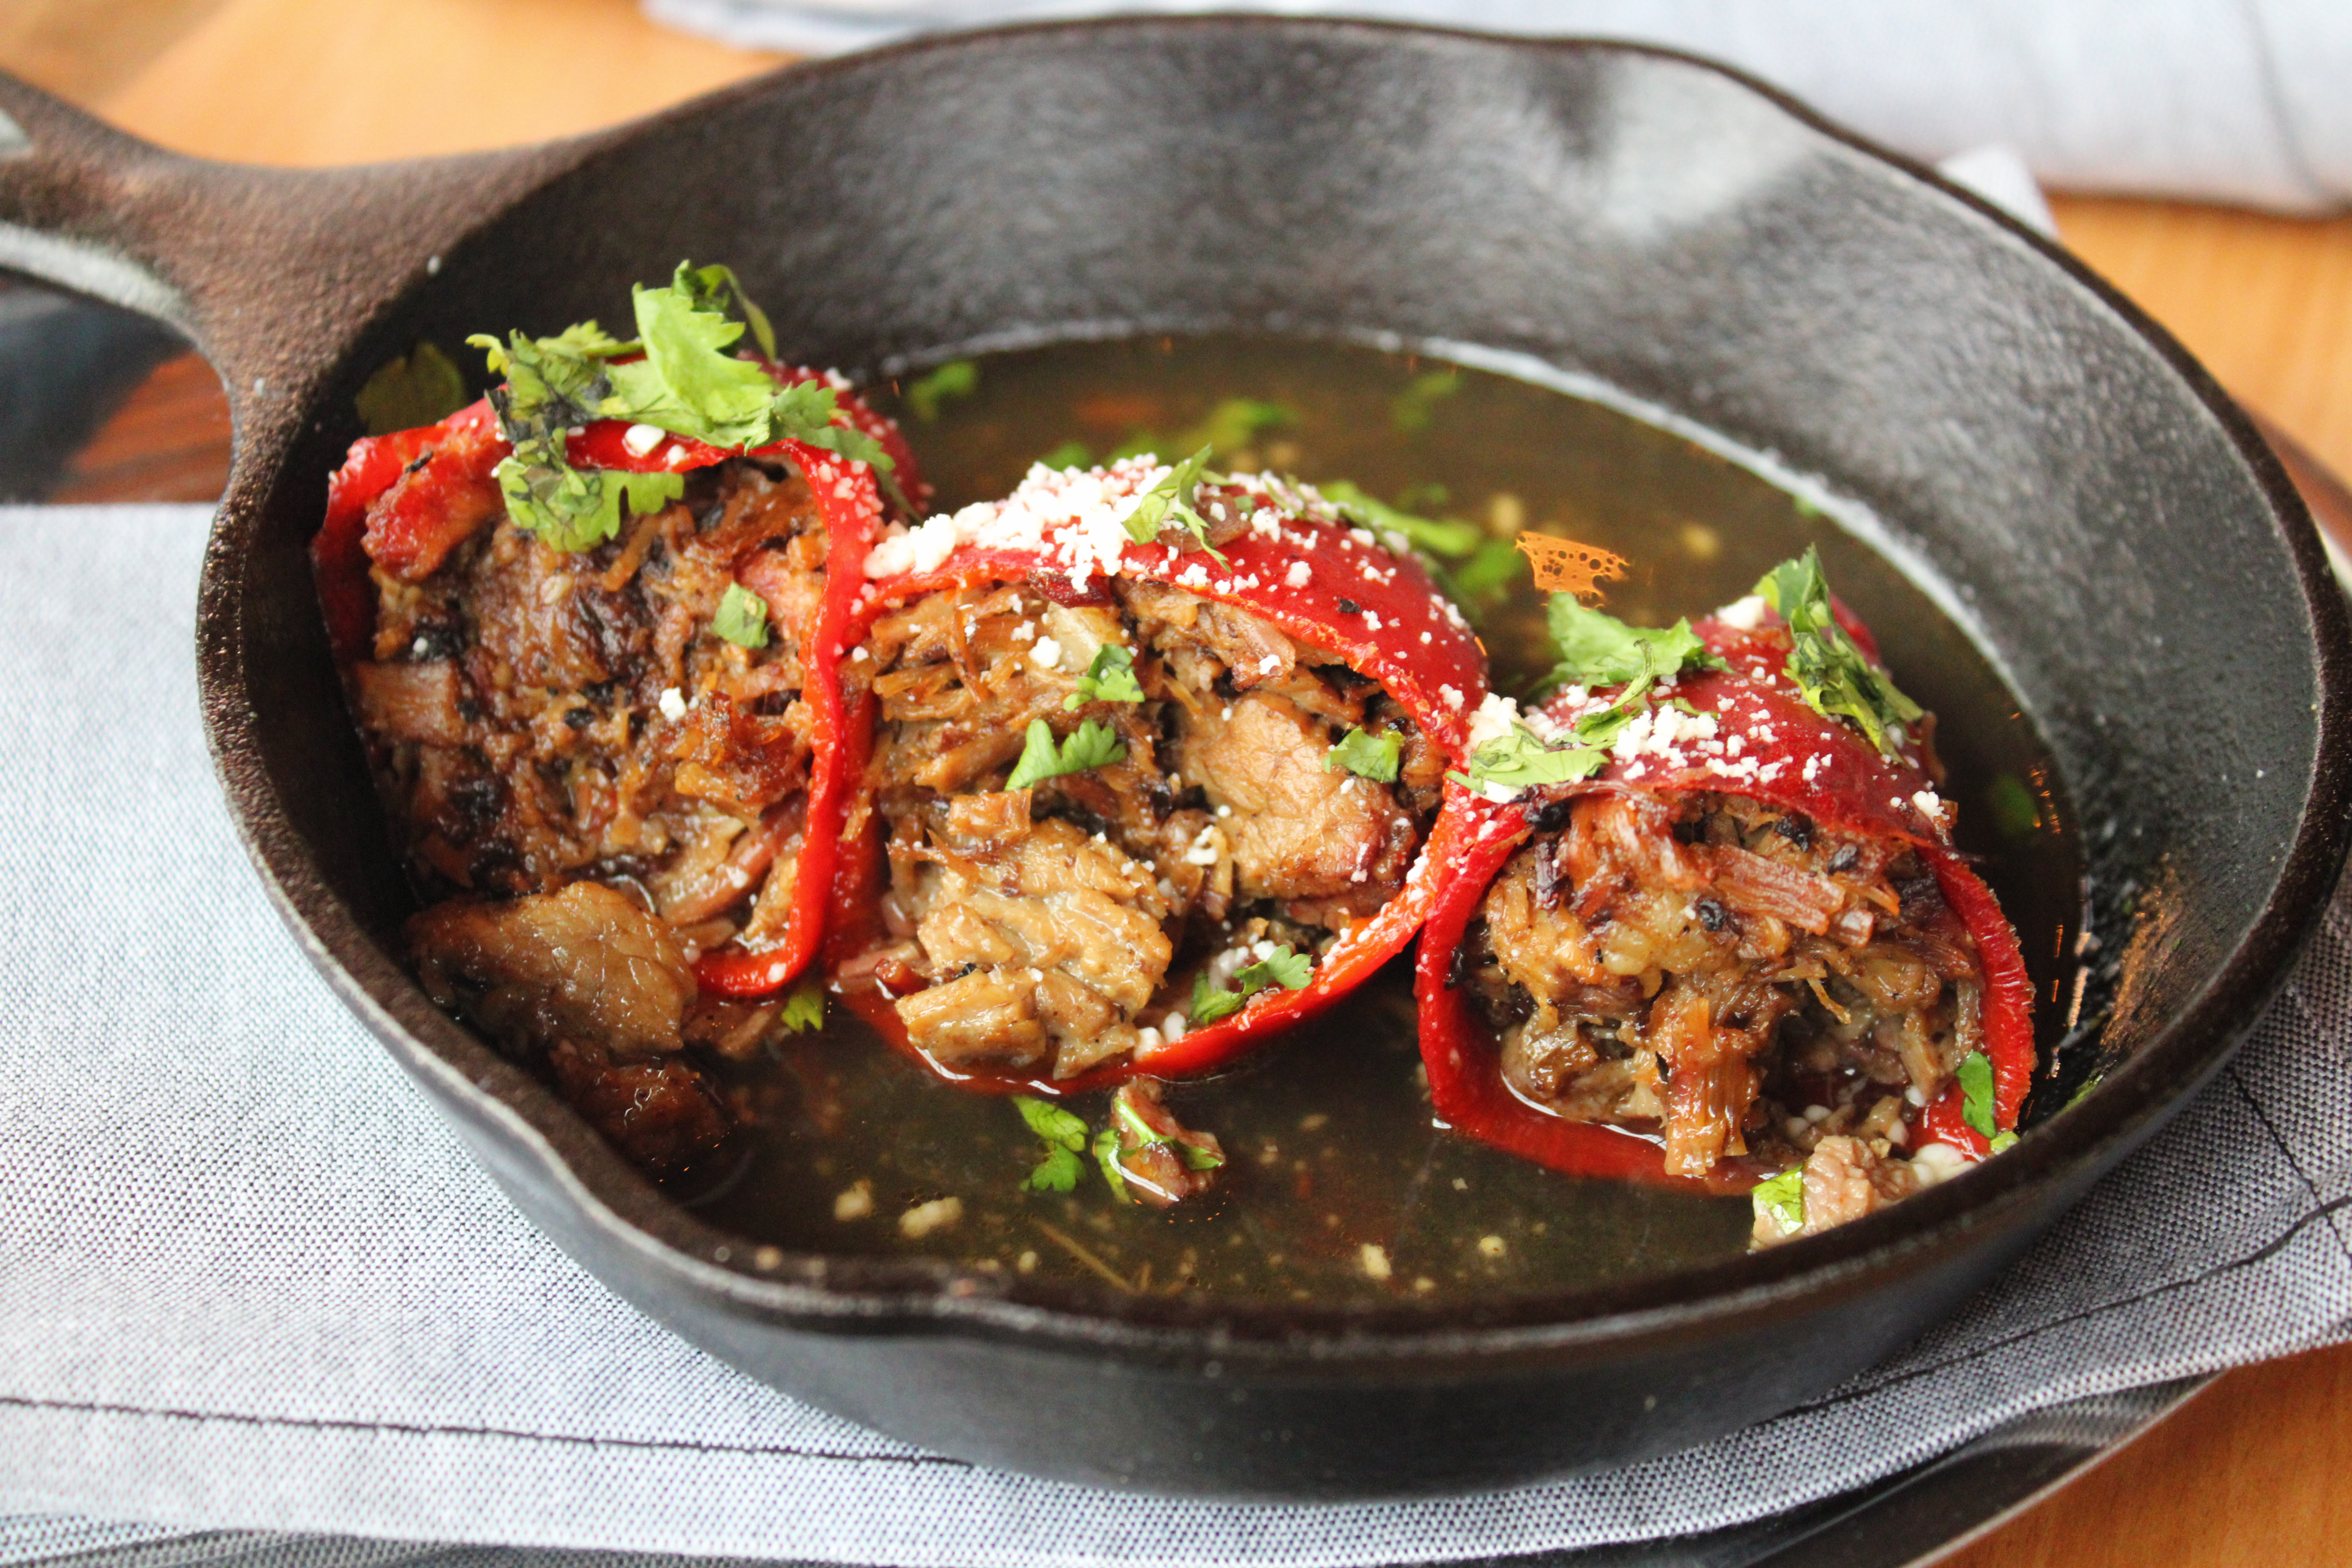 Barbecue stuffed peppers in a cast iron skillet